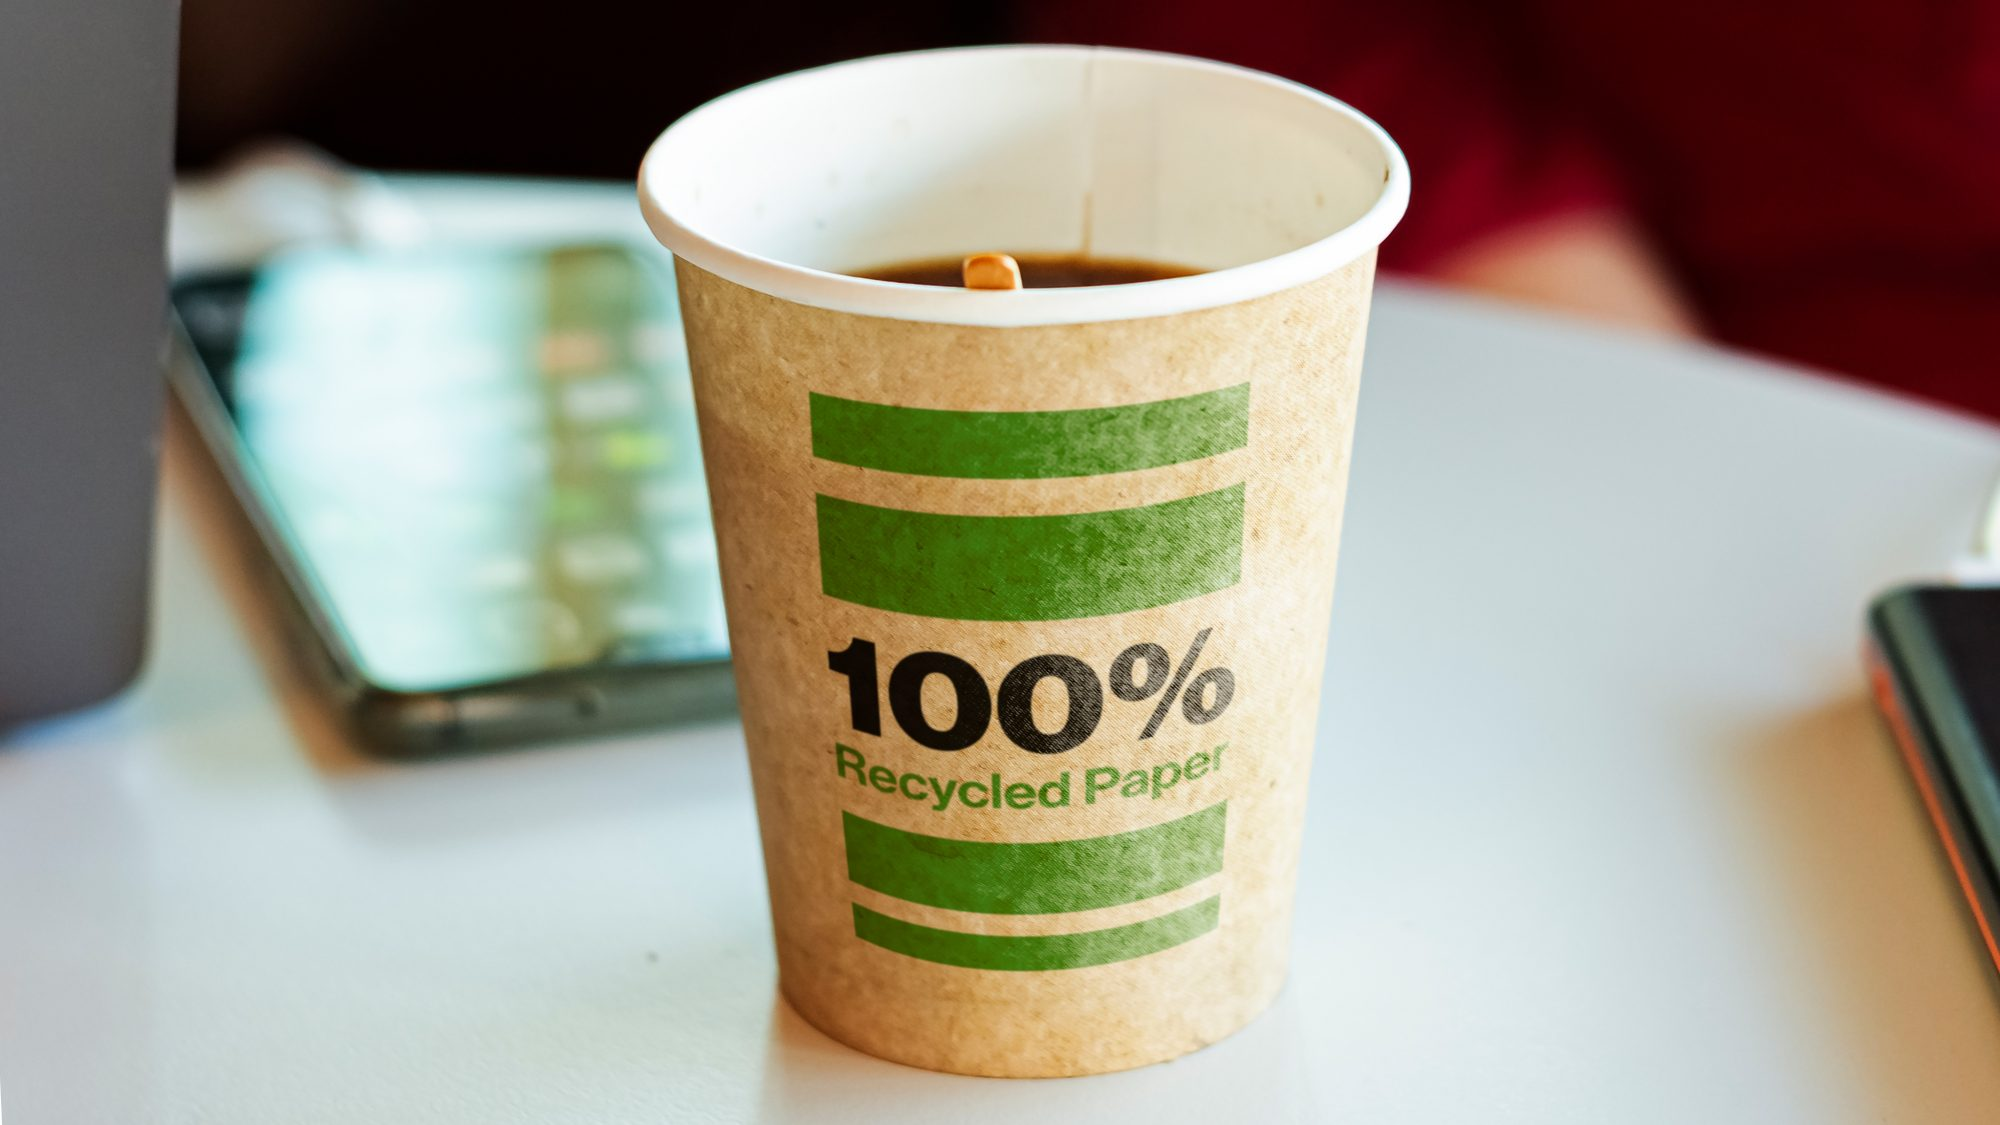 a recycled paper container containing hot coffee for a break. Environmental protection and ecological issues